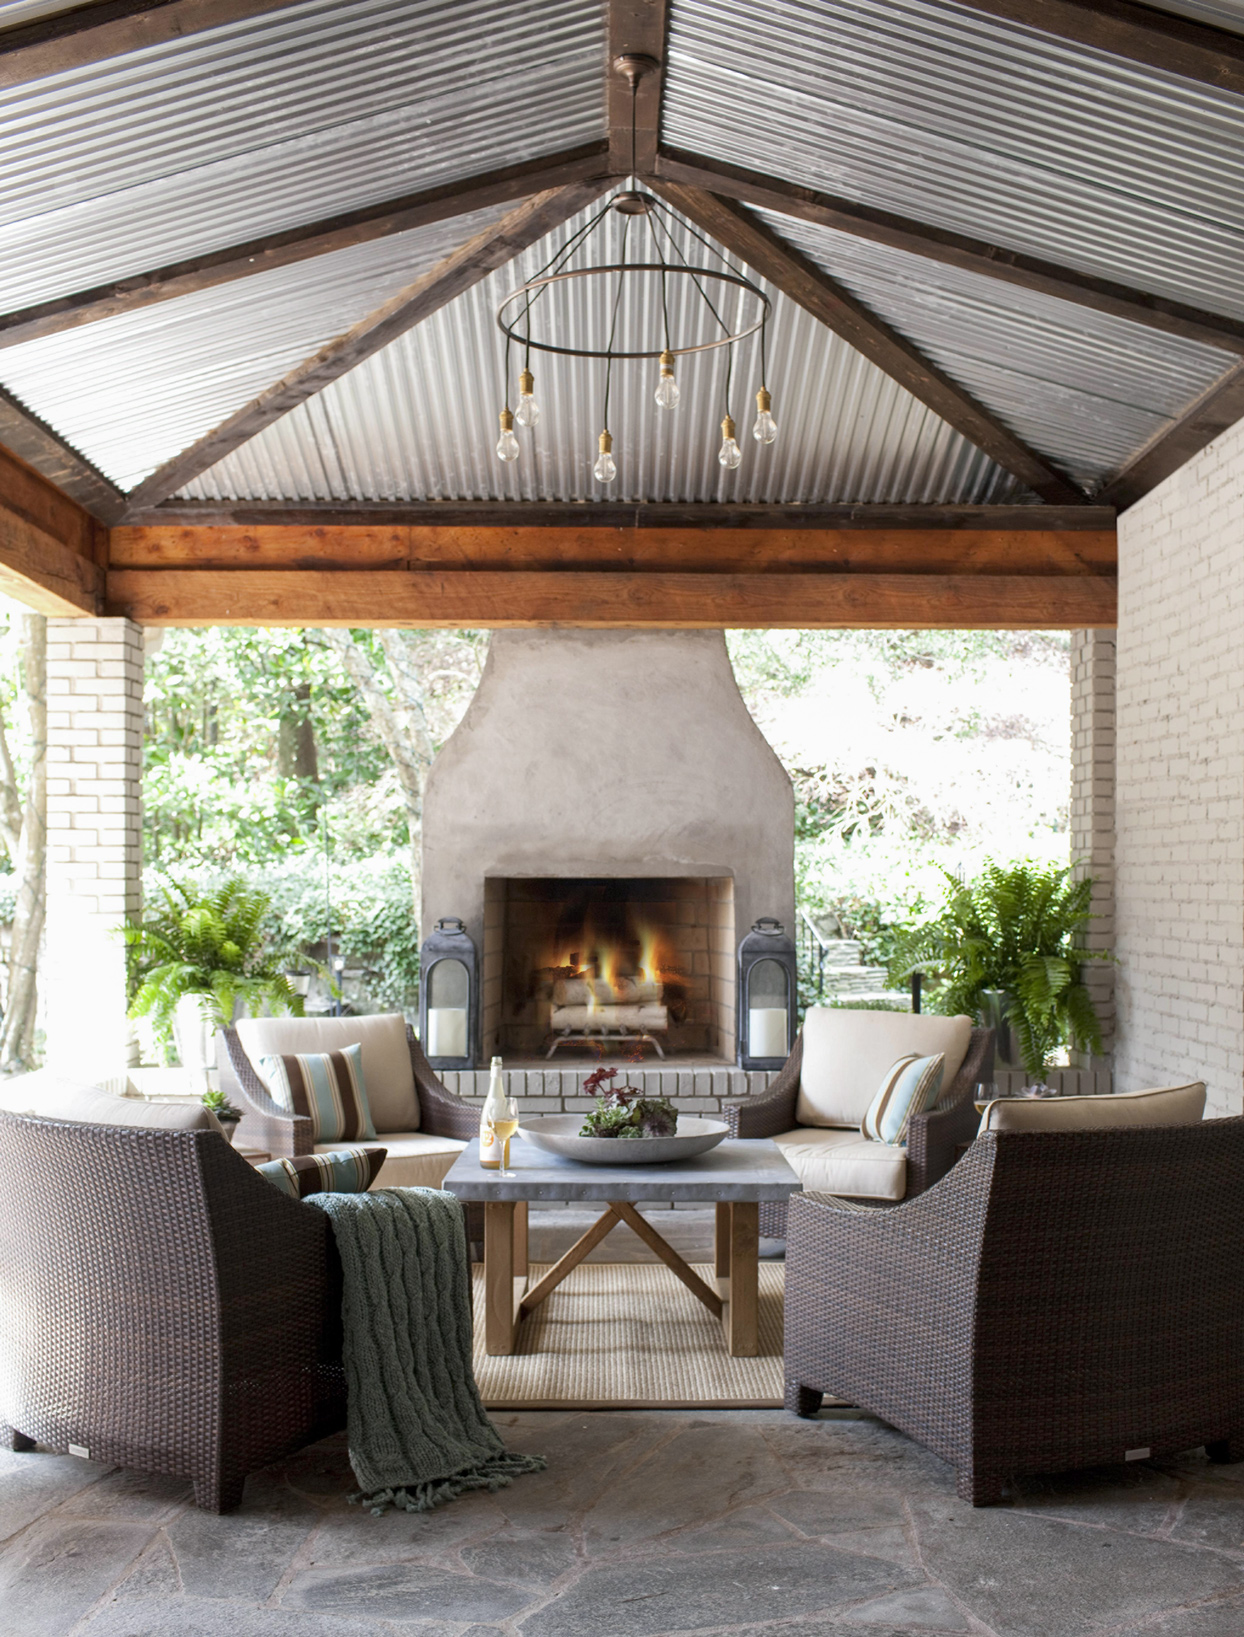 23 Cozy Outdoor Fireplace Ideas For The Most Inviting Backyard Better Homes Gardens